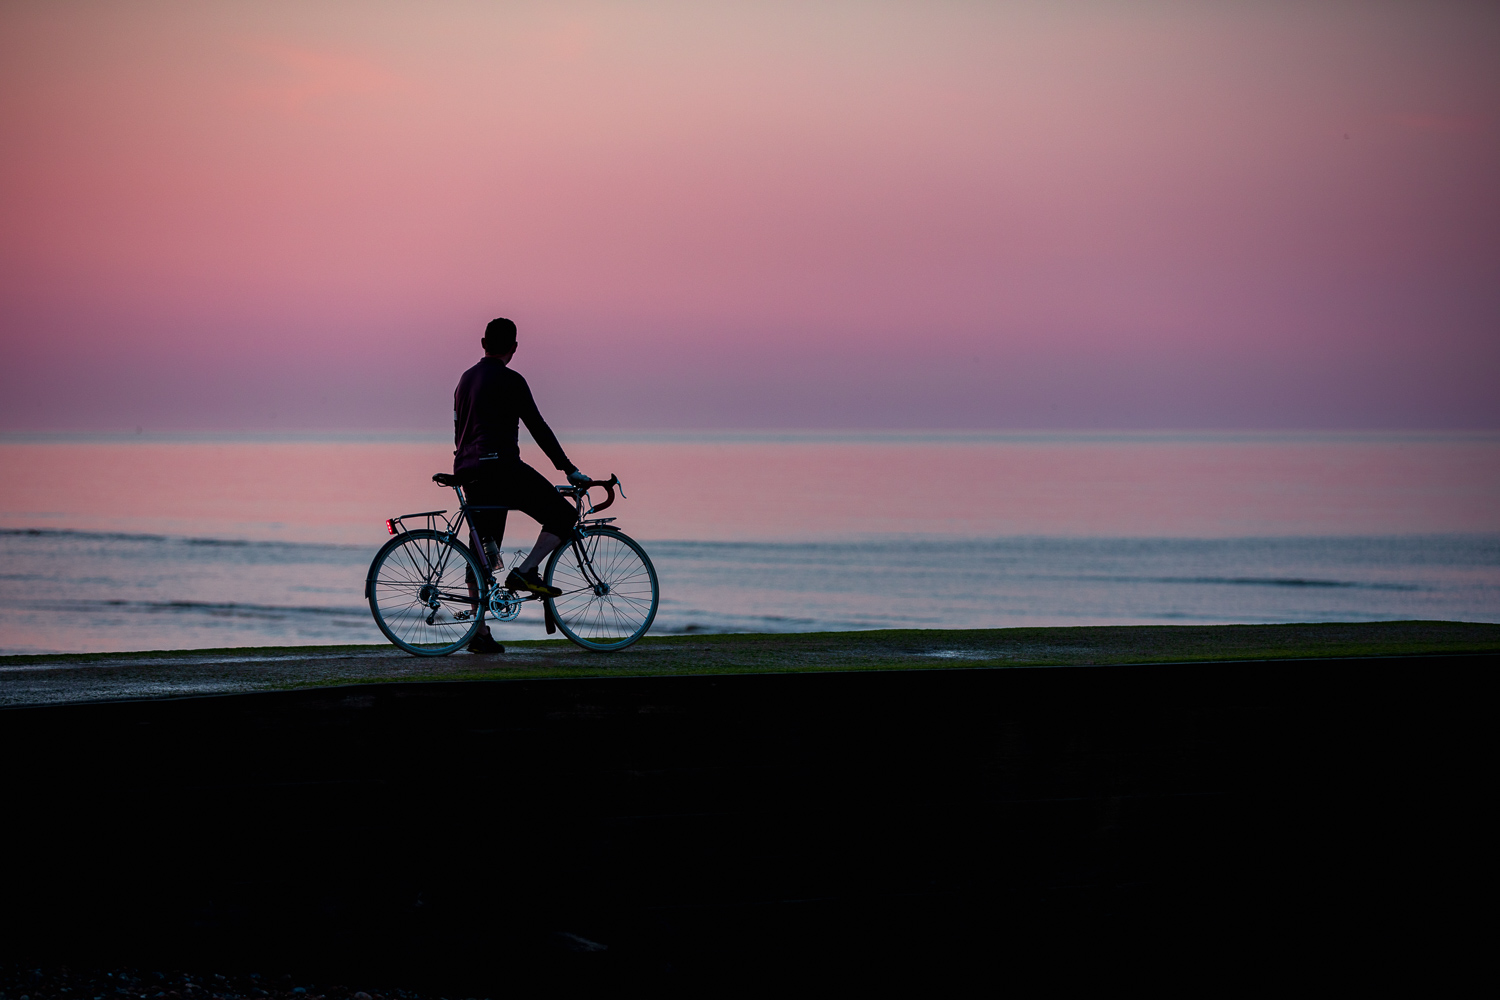 Cycling in Sussex - a cyclist in silhouette looks towards a violet sunrise on the seafront at Bexhill-on-Sea